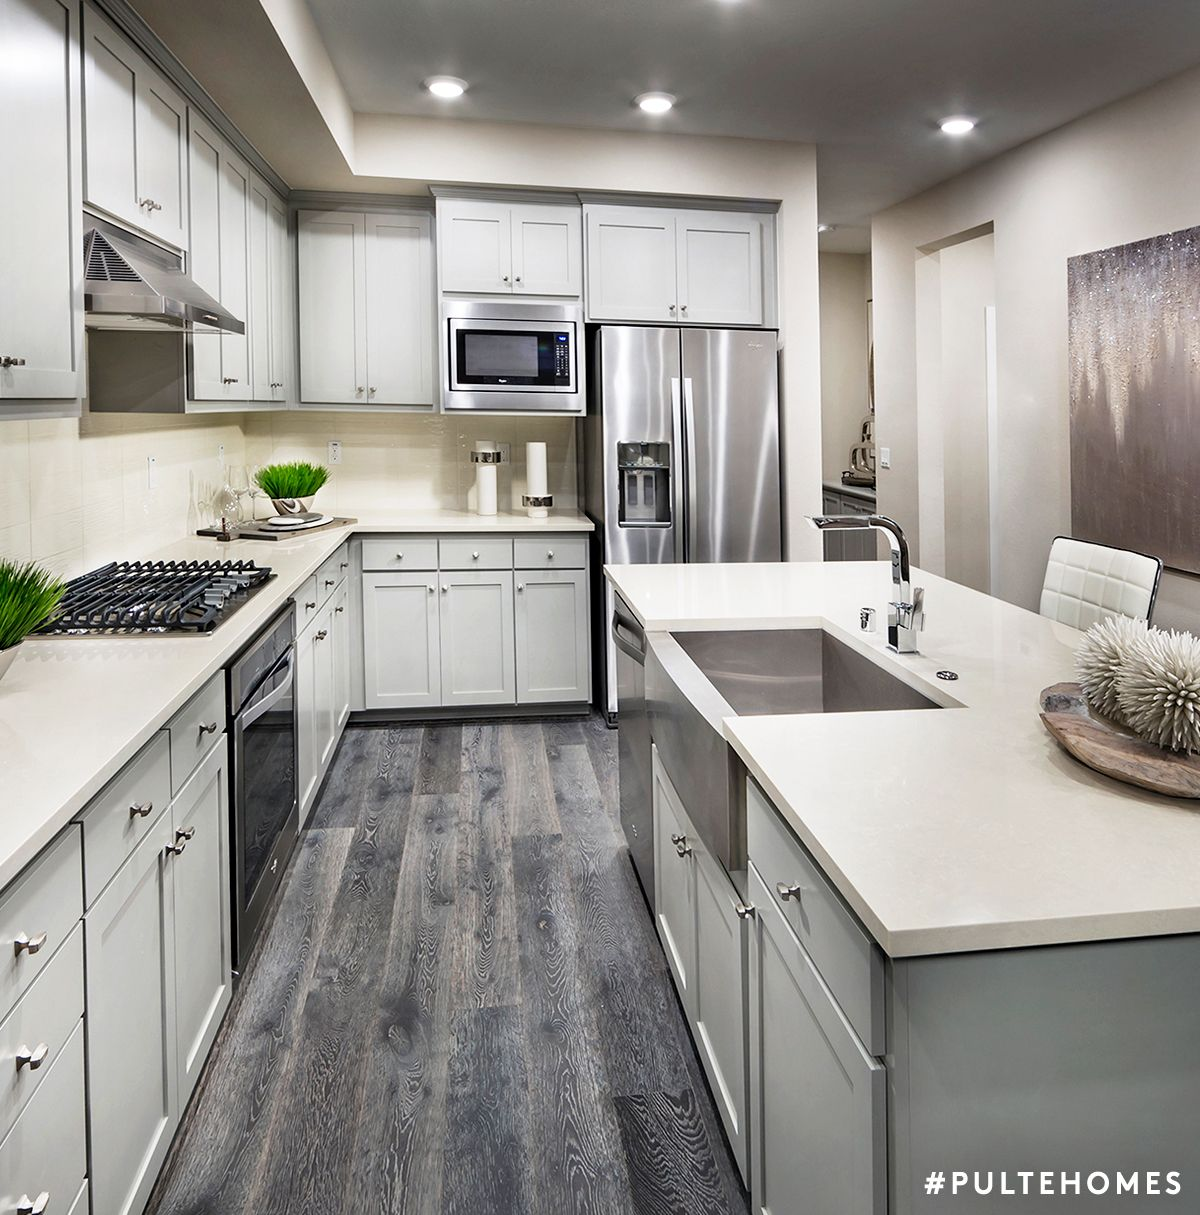 A Modern Kitchen Serving Up Function And Flow Any Chef Would Savor Pulte Homes Kitchen Remodel Design House Design Kitchen Kitchen Remodel Small